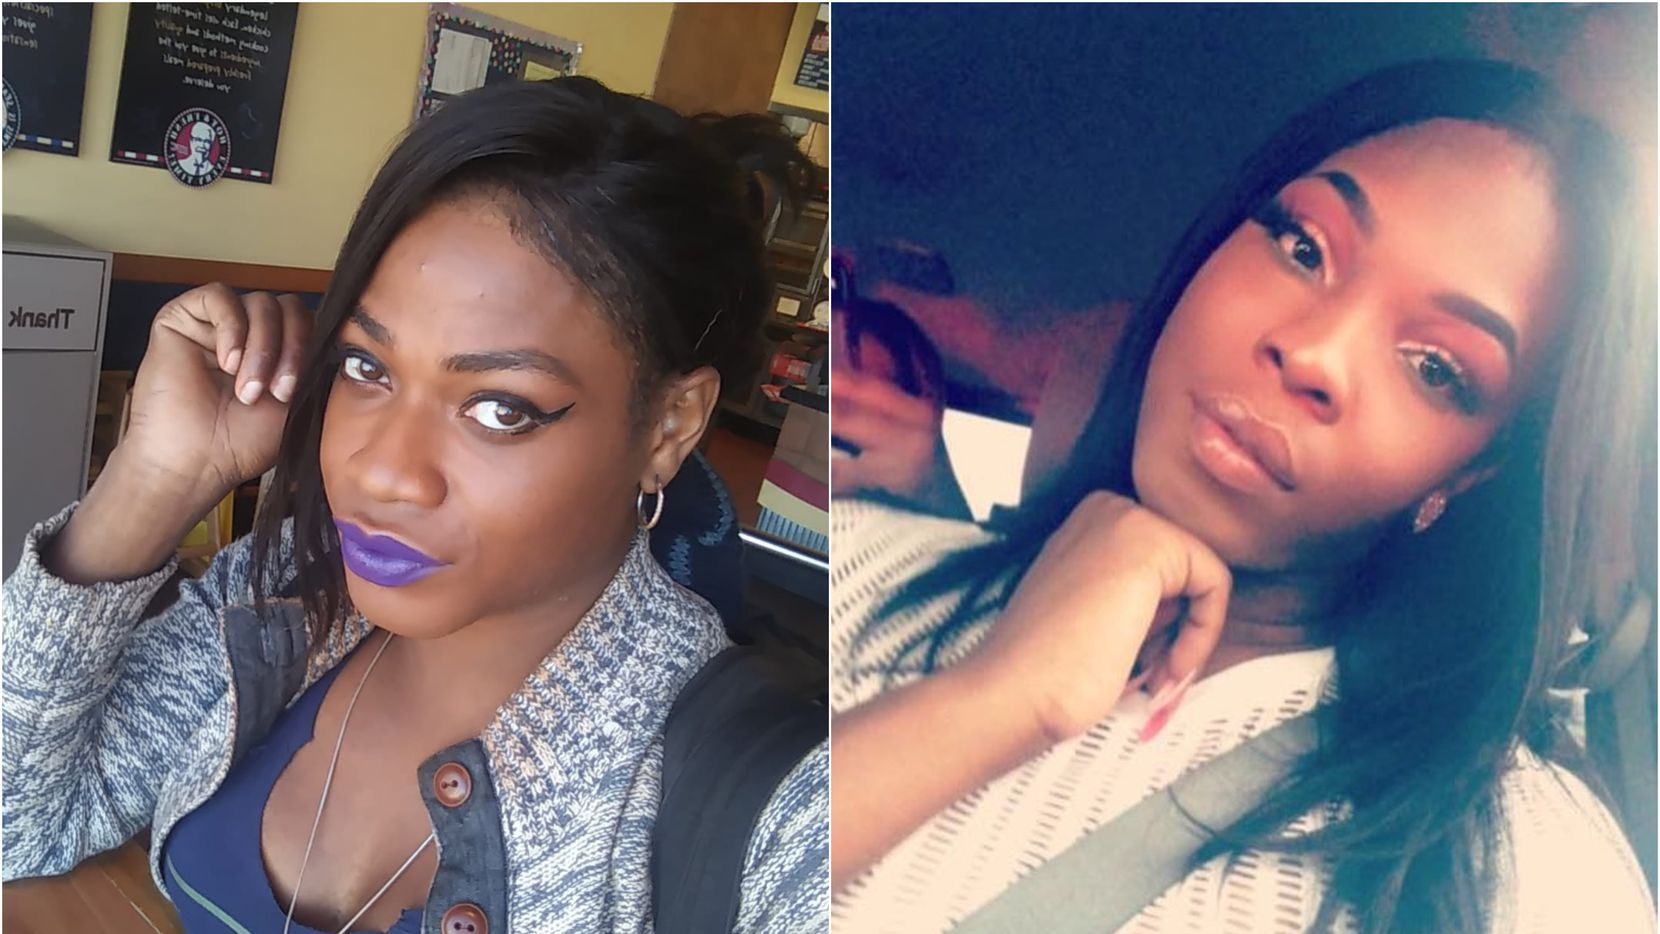 Chynal Lindsey (left), a 26-year-old woman from Arlington who was found dead in White Rock Lake on June 1, and Muhlaysia Booker, who was found shot to death last month.